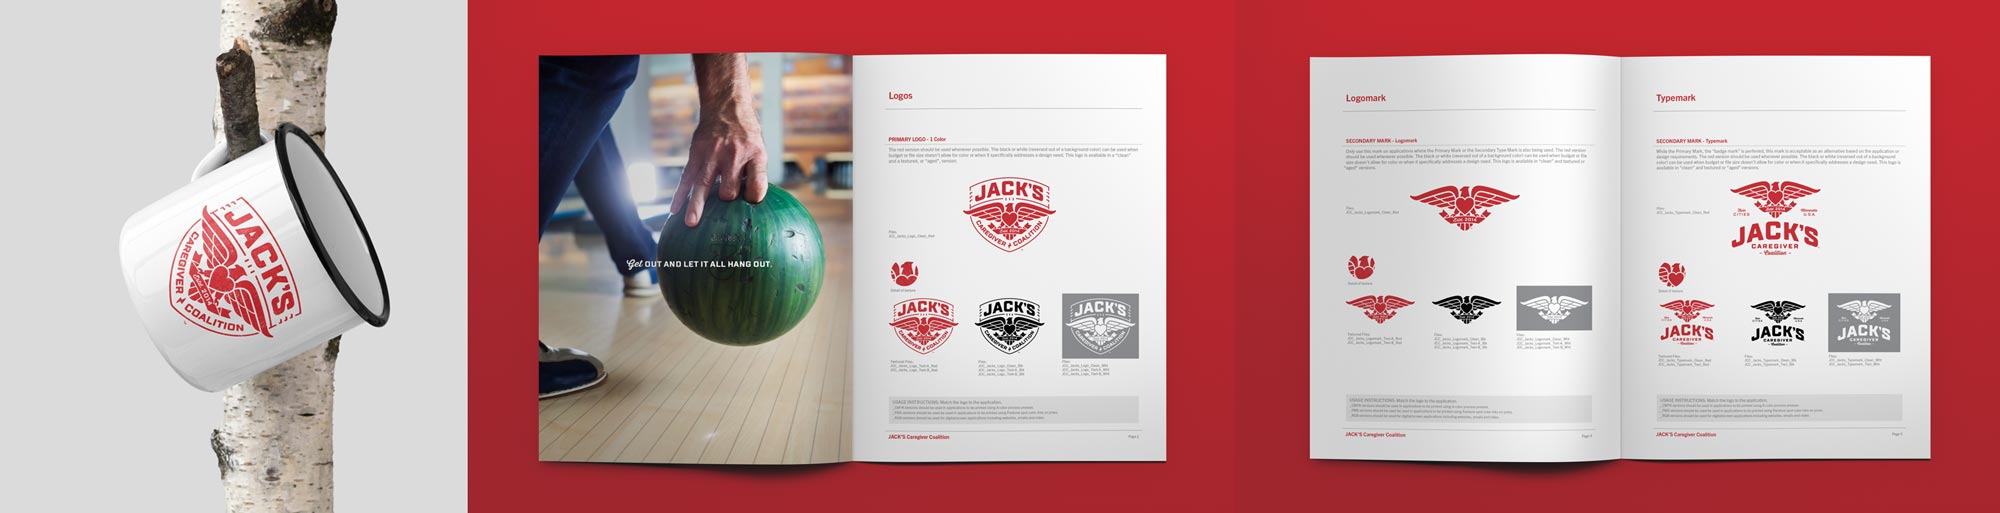 Jack's Caregiver Coalition - Branded Mug & Brand Guidelines